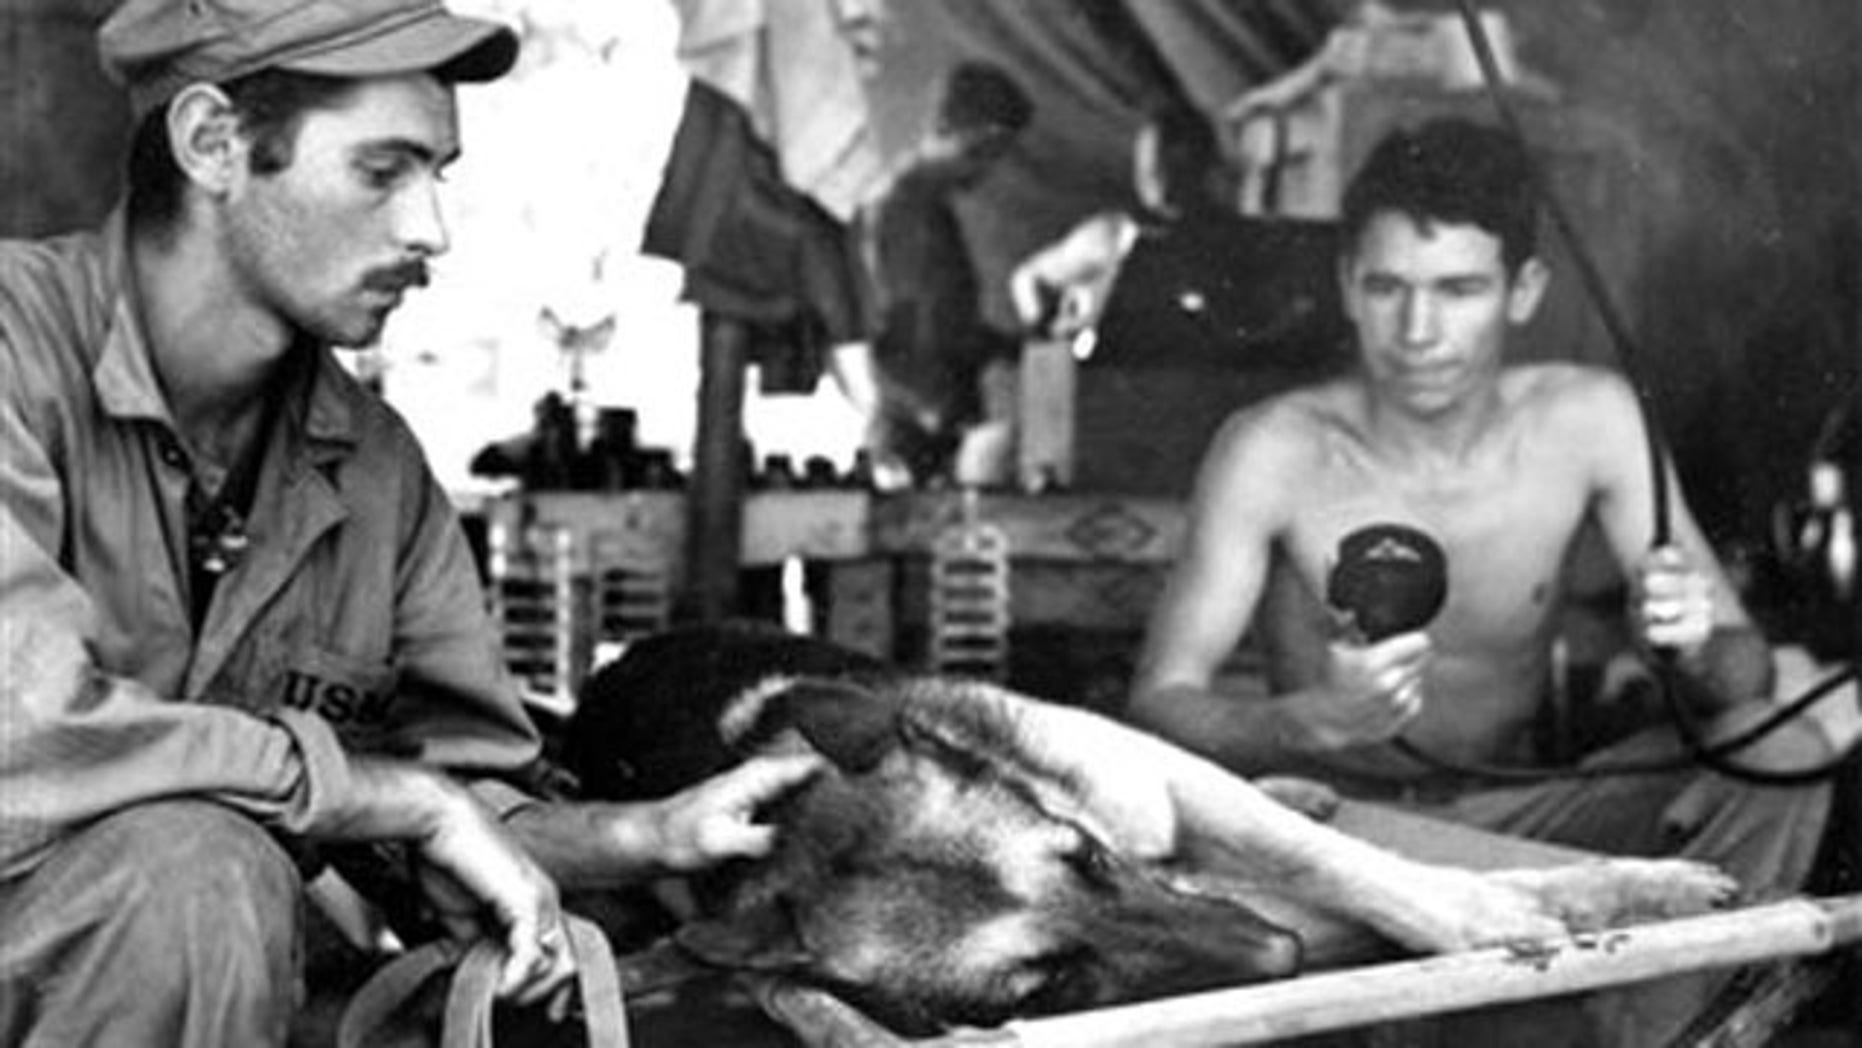 """This undated photo provided by the National Archives via the National World War II Museum shows a Marine Corps dog handler as he comforts his German shepherd while the dog is X-rayed after being shot by a Japanese sniper on Bougainville, The dog died of its injuries. The photograph is part of an exhibit, titled """"Loyal Force: Animals at War,"""" to be displayed at the National World War II Museum in New Orleans from July 22-Oct. 17. (AP Photo/National Archives via the National World War II Museum)"""